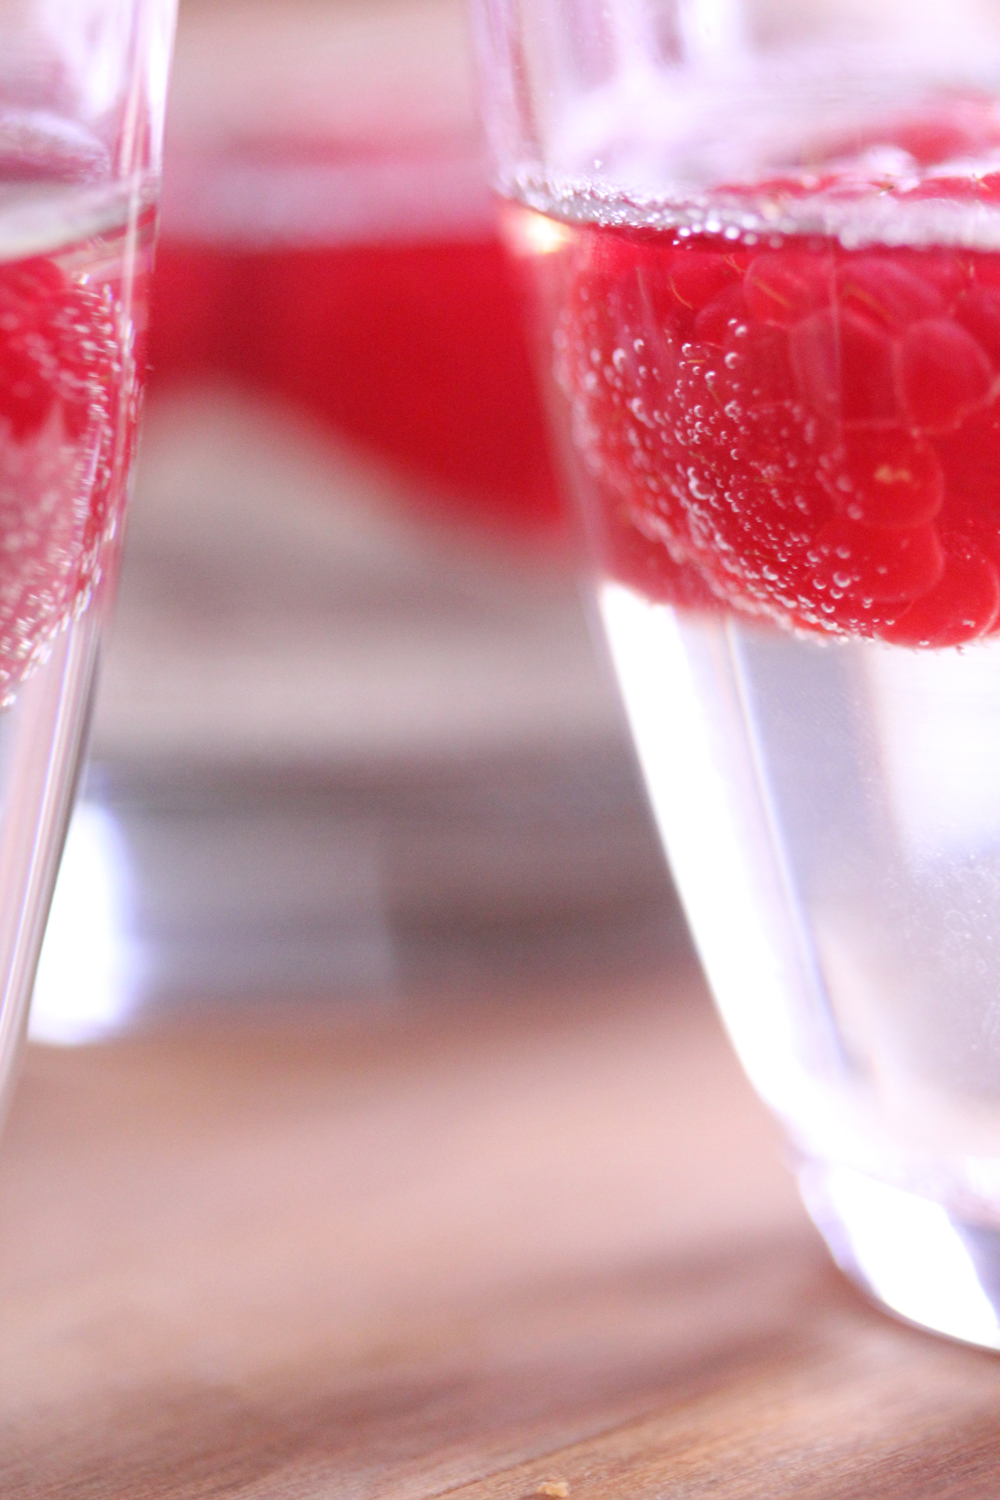 RASPBERRY CHAMPAGNE JELLO 'DRINKS' | Sweet Peas and Saffron